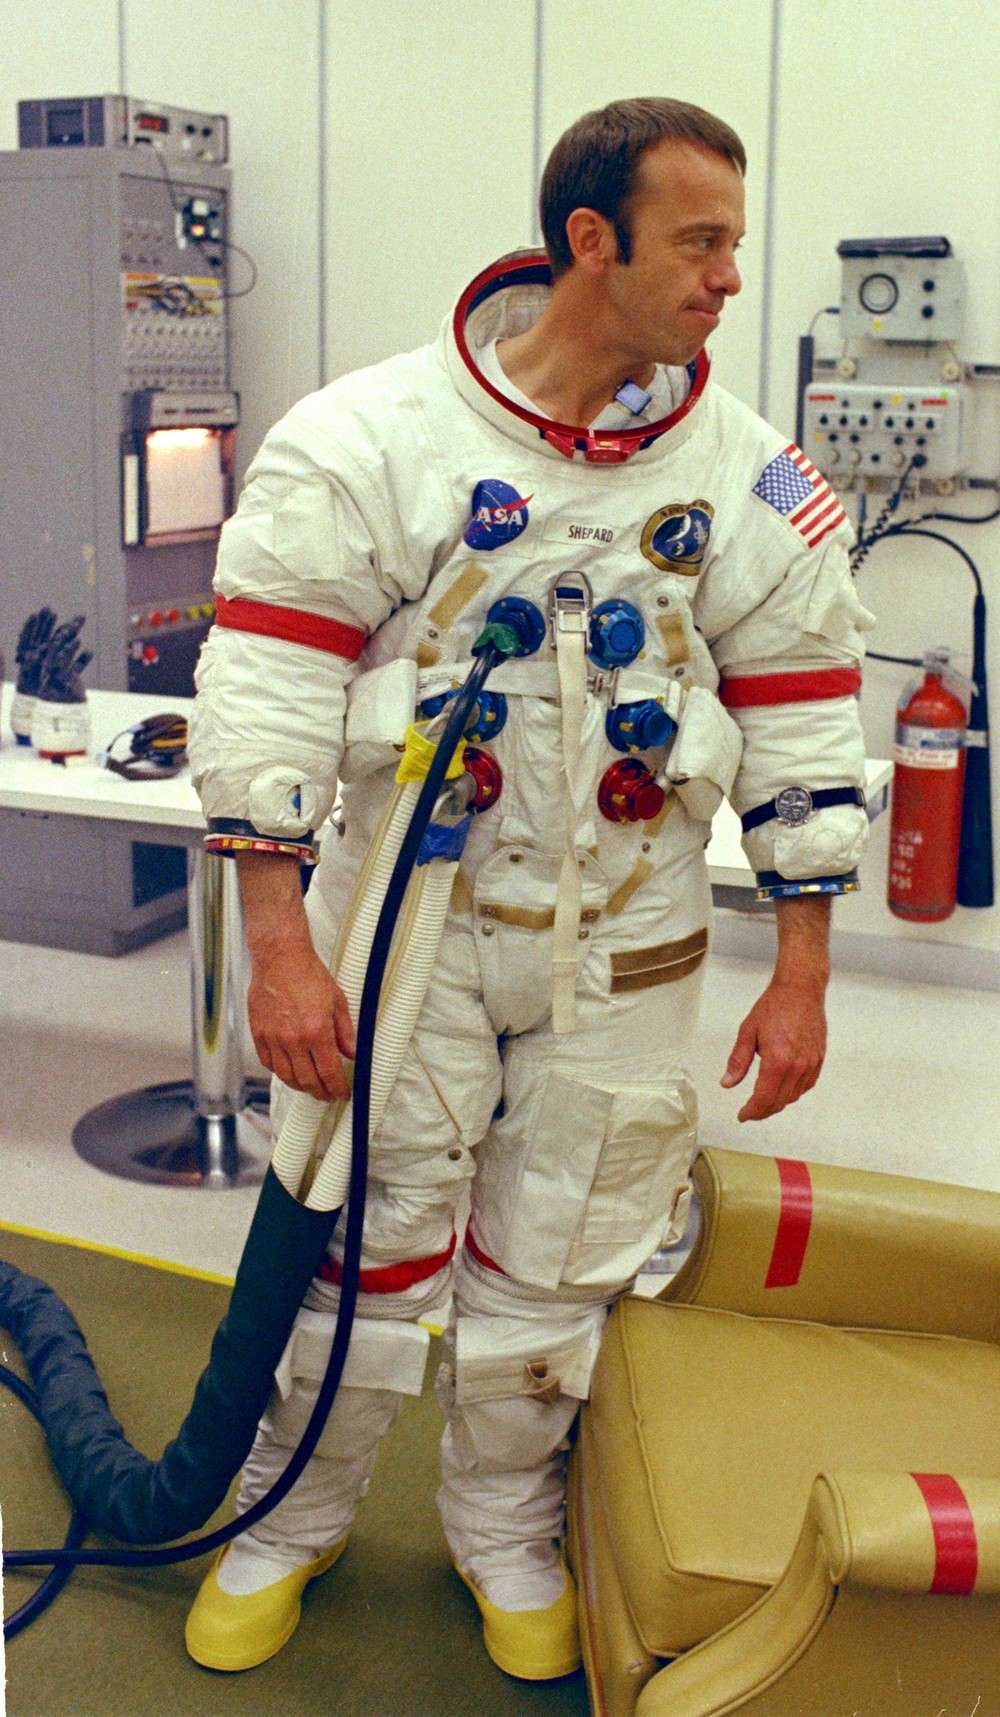 alan-shepard-en-1971-avant-son-vol-sur-la-mission-apollo-14-nasa